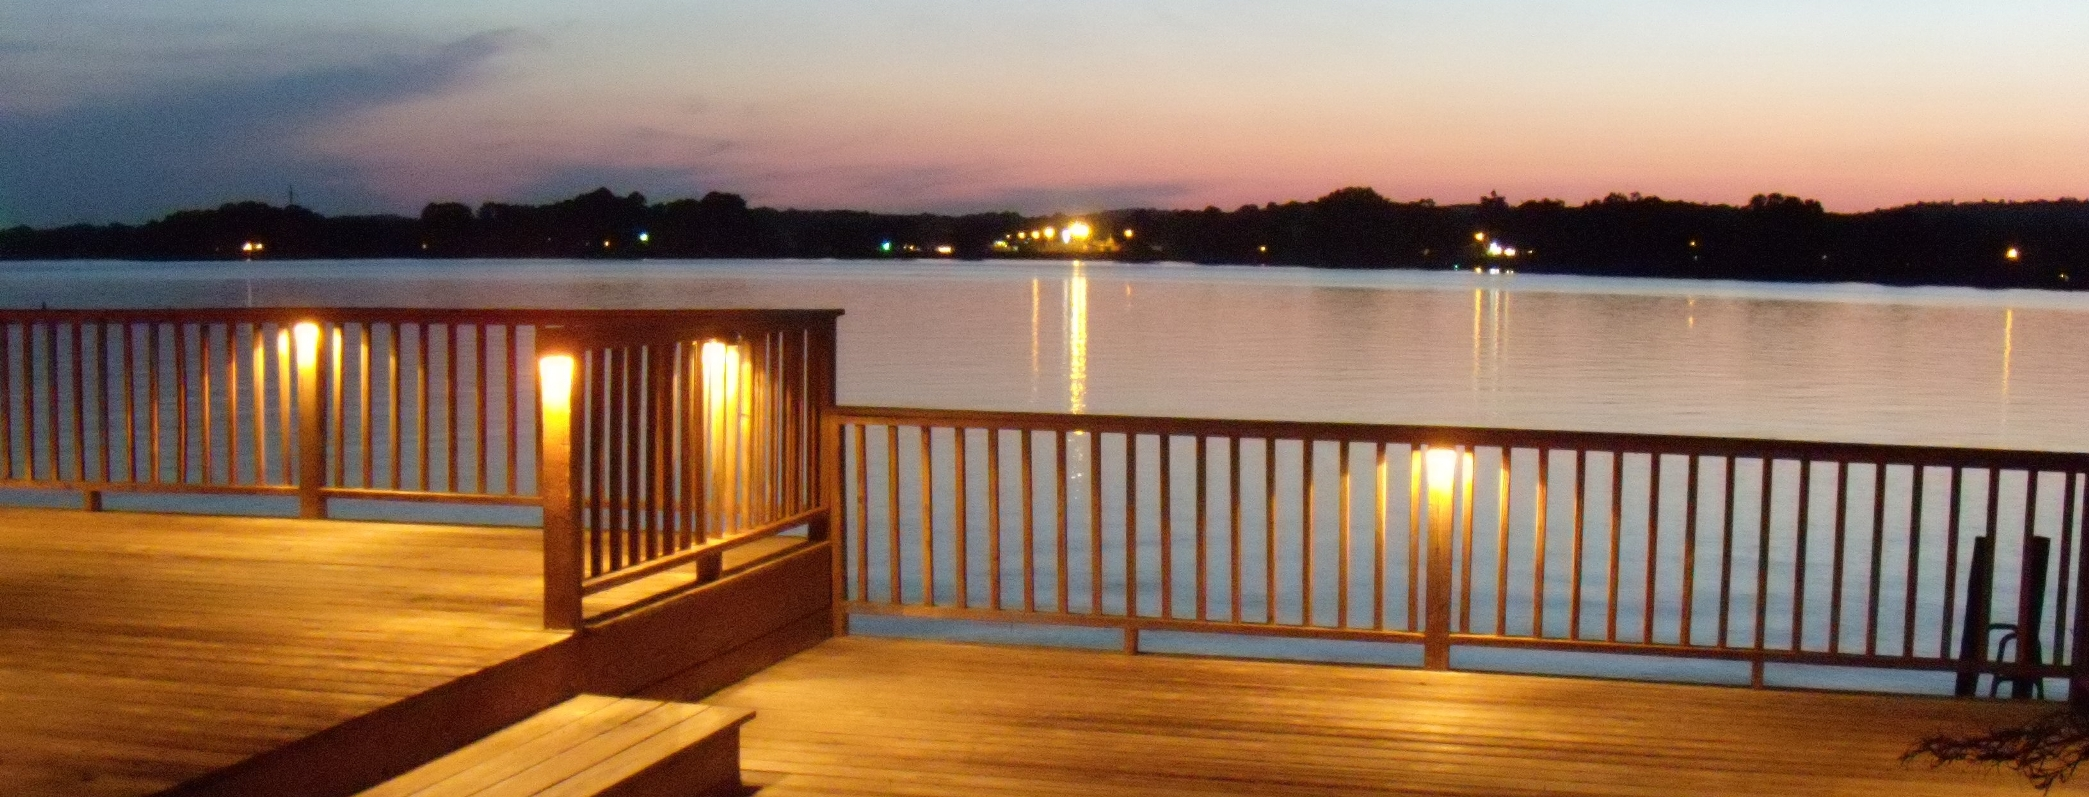 Astounding Denver Nc Waterfront Homes For Sale Explore Homes Lake Norman Download Free Architecture Designs Scobabritishbridgeorg